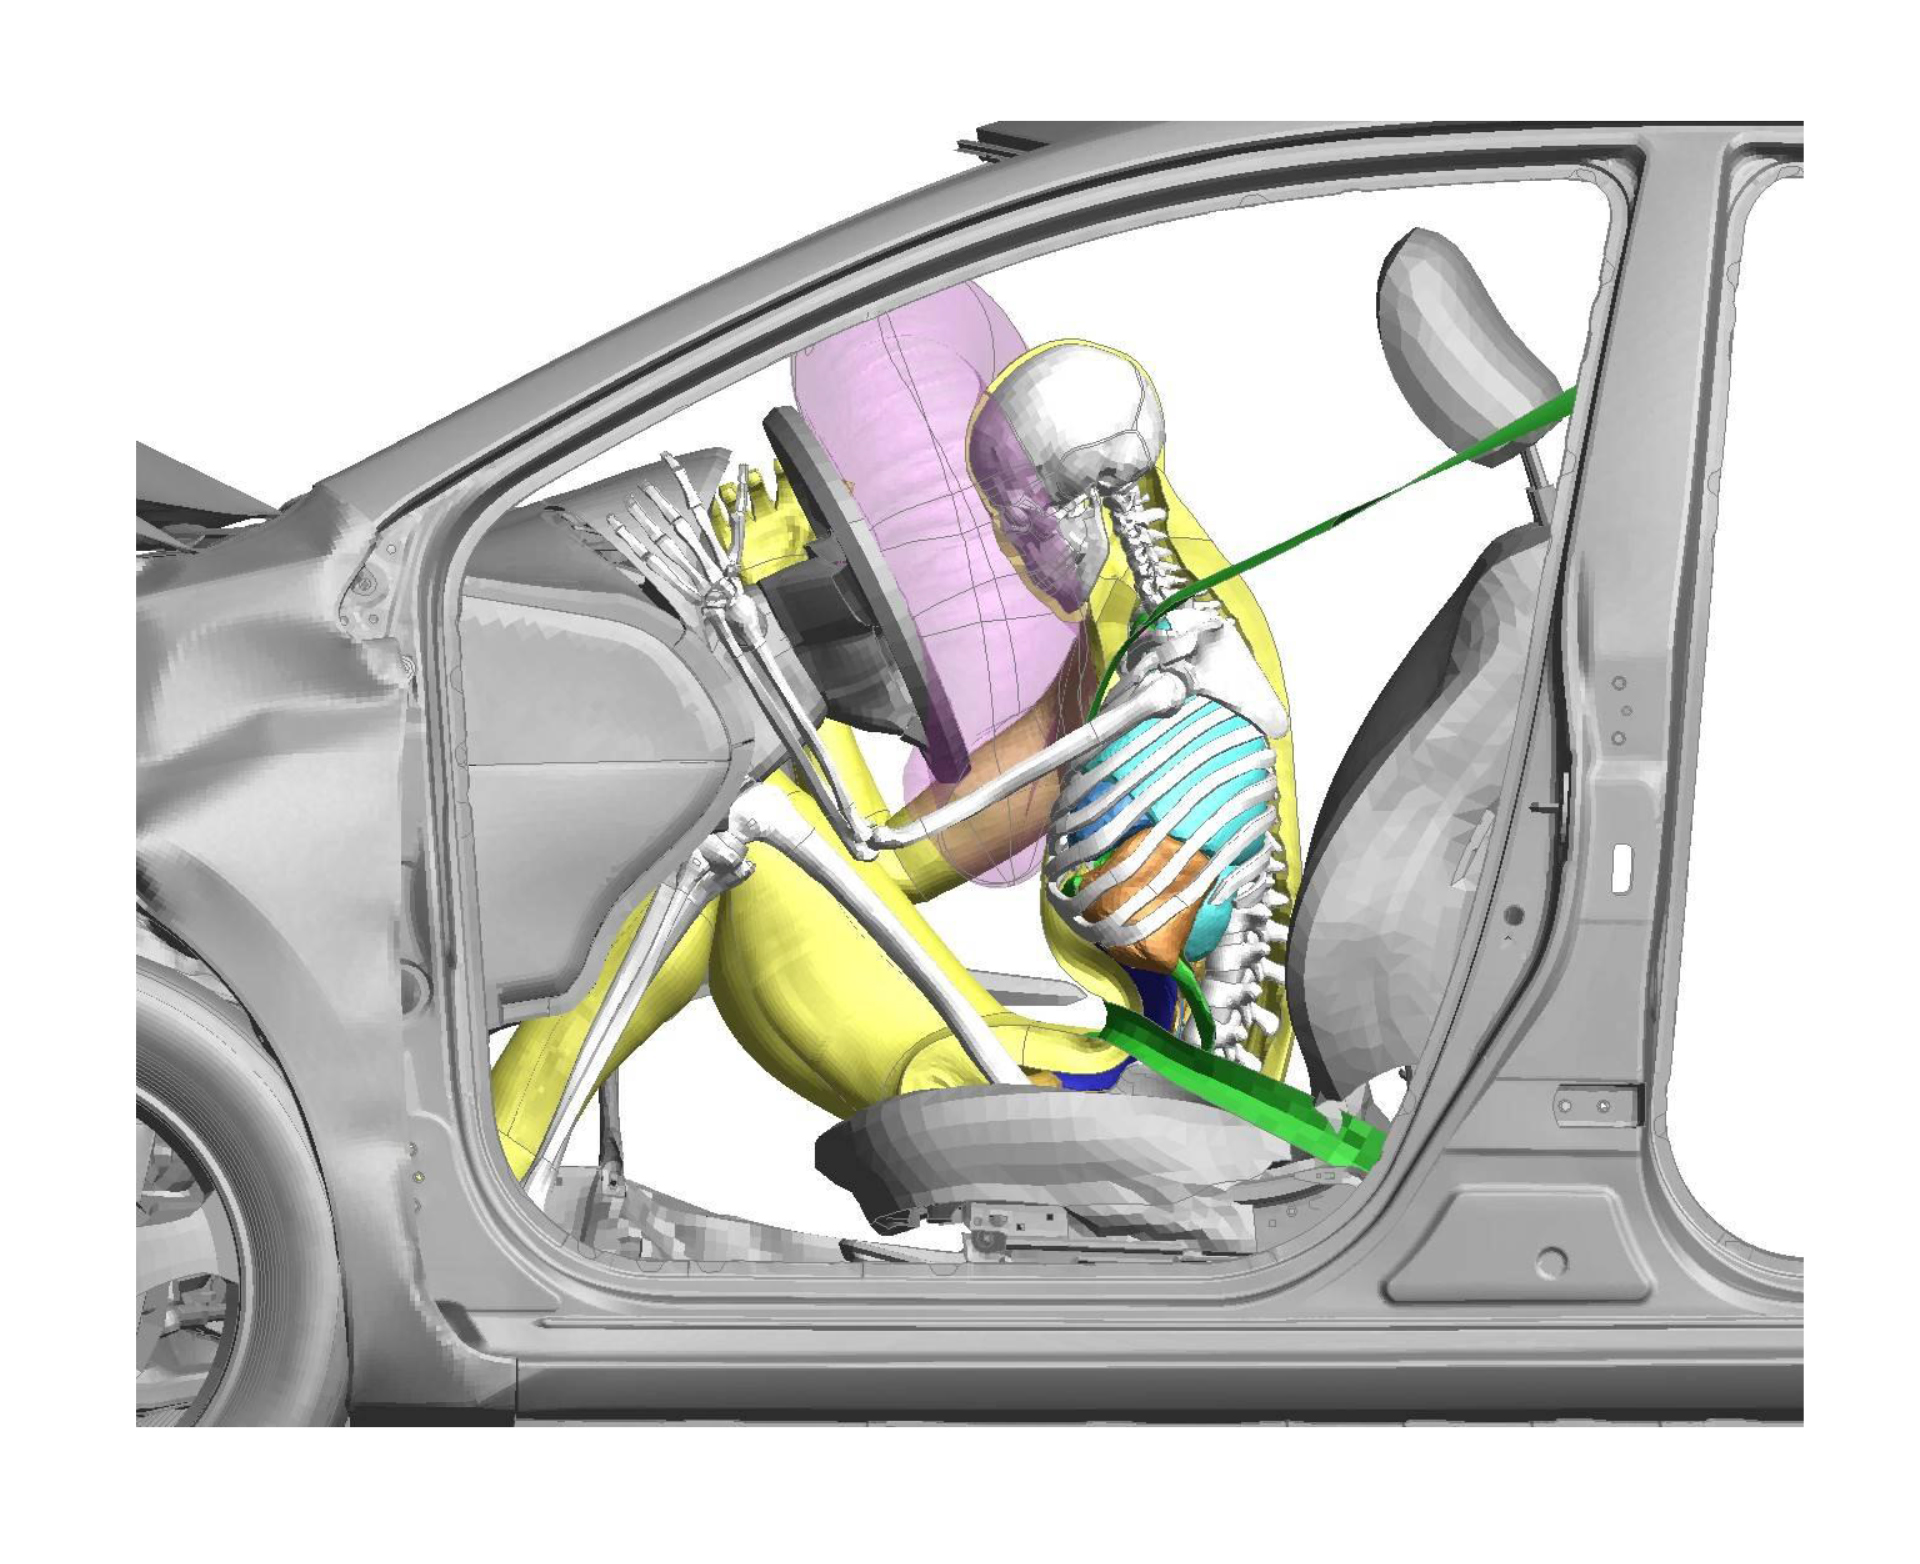 Simulating the motion of internal organs during crash testing